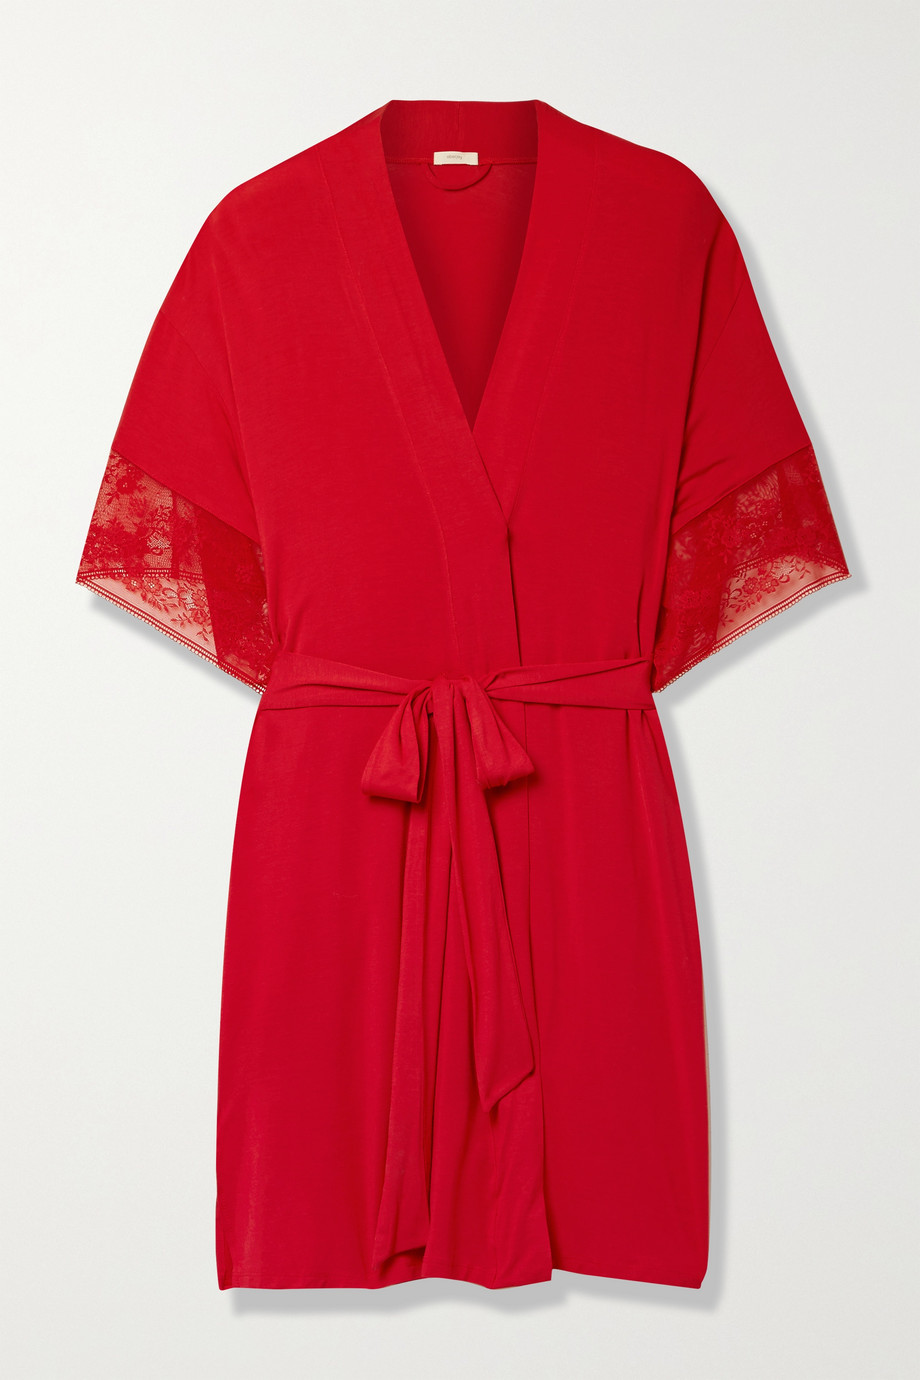 Eberjey Raquel Heartbreaker lace-trimmed stretch-modal robe